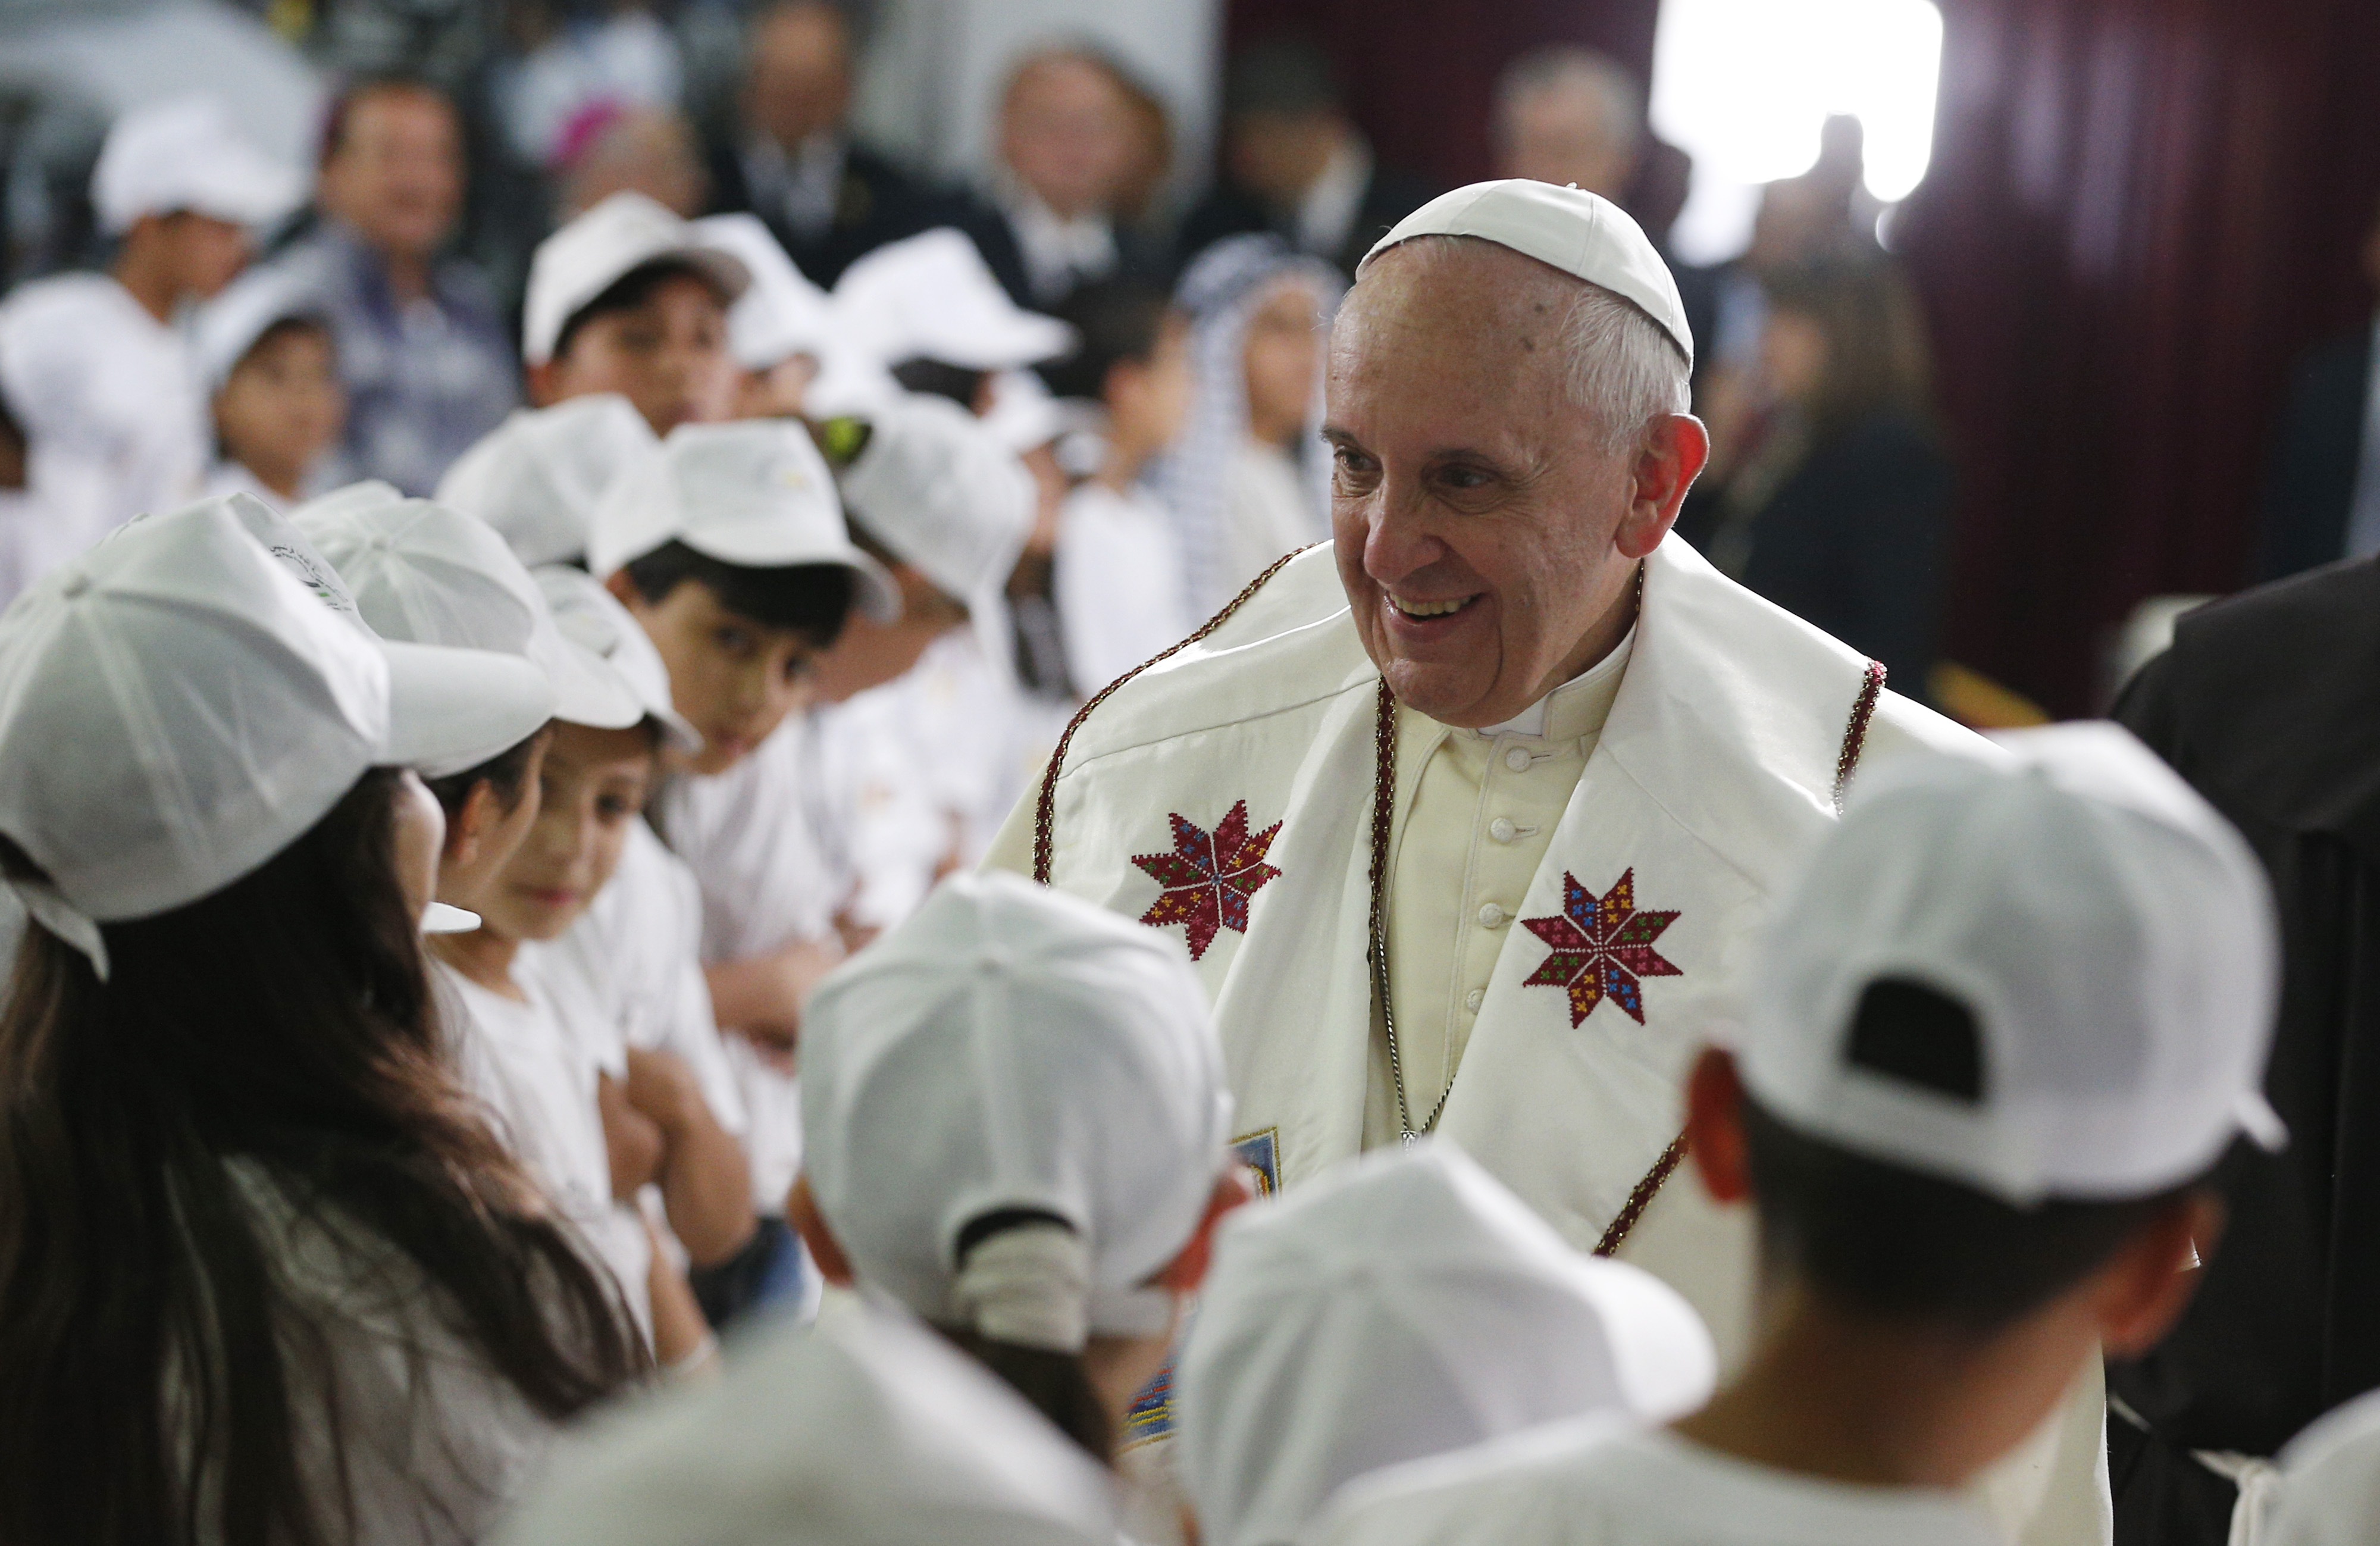 Httpwww Overlordsofchaos Comhtmlorigin Of The Word Jew Html: Francis Speaking To 'Brothers,' Not 'Friends': On Last